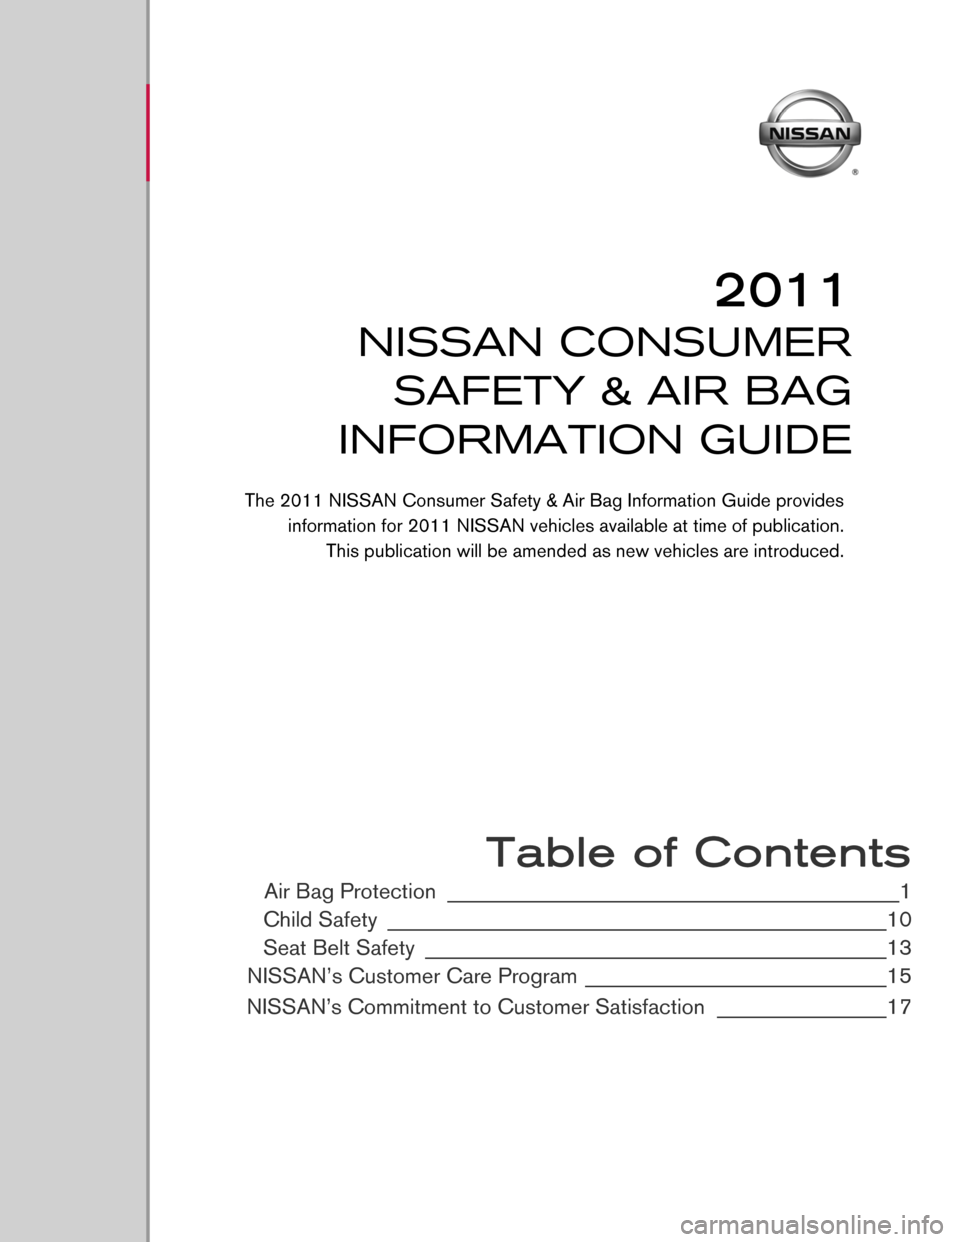 NISSAN VERSA 2011 1.G Consumer Safety Air Bag Information Guide, Page 1